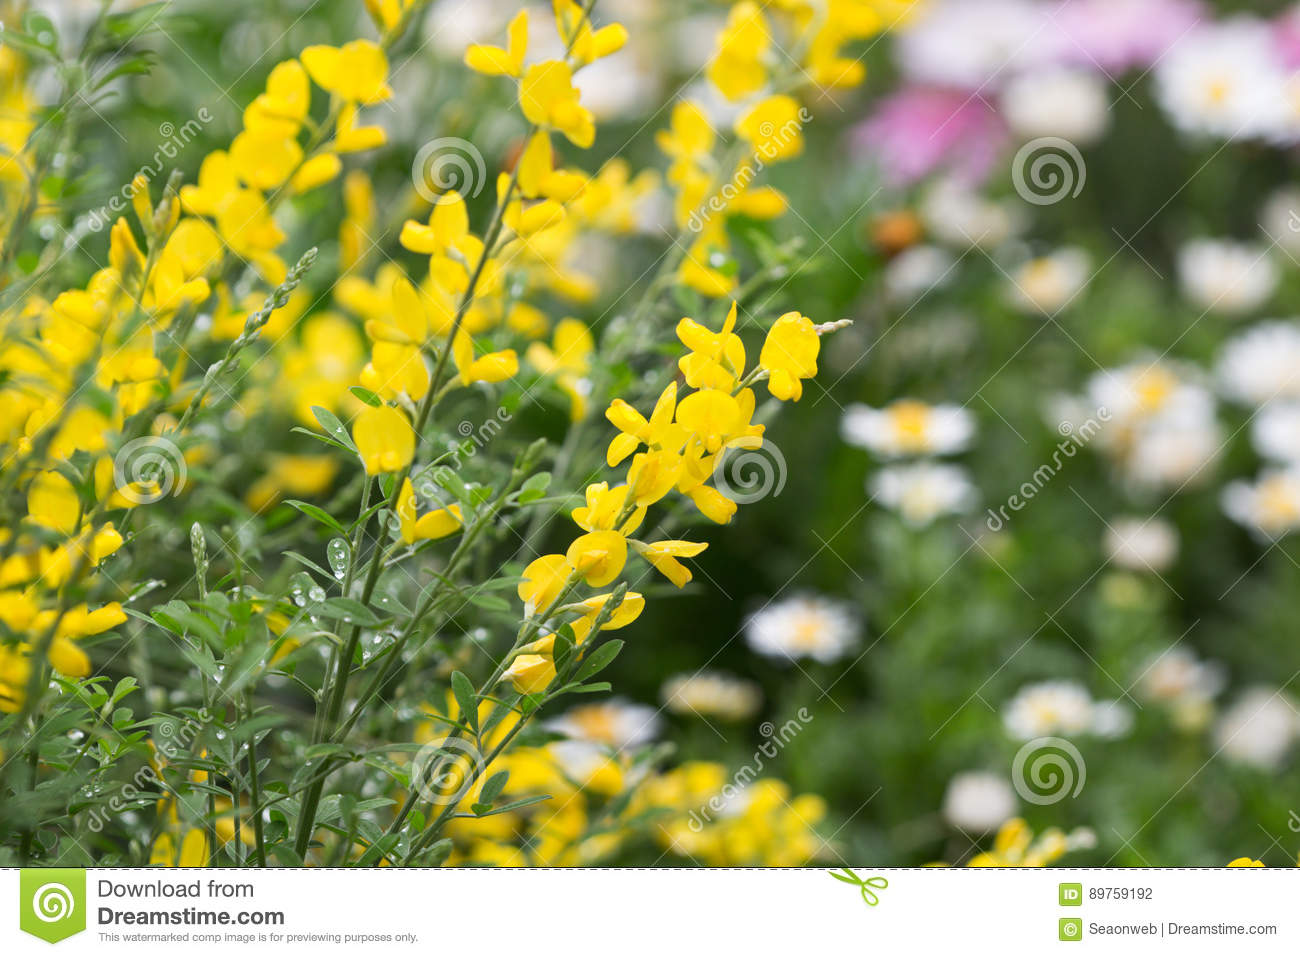 Cytisus Scorparius An Invasive Species Stock Photo Image Of Flower